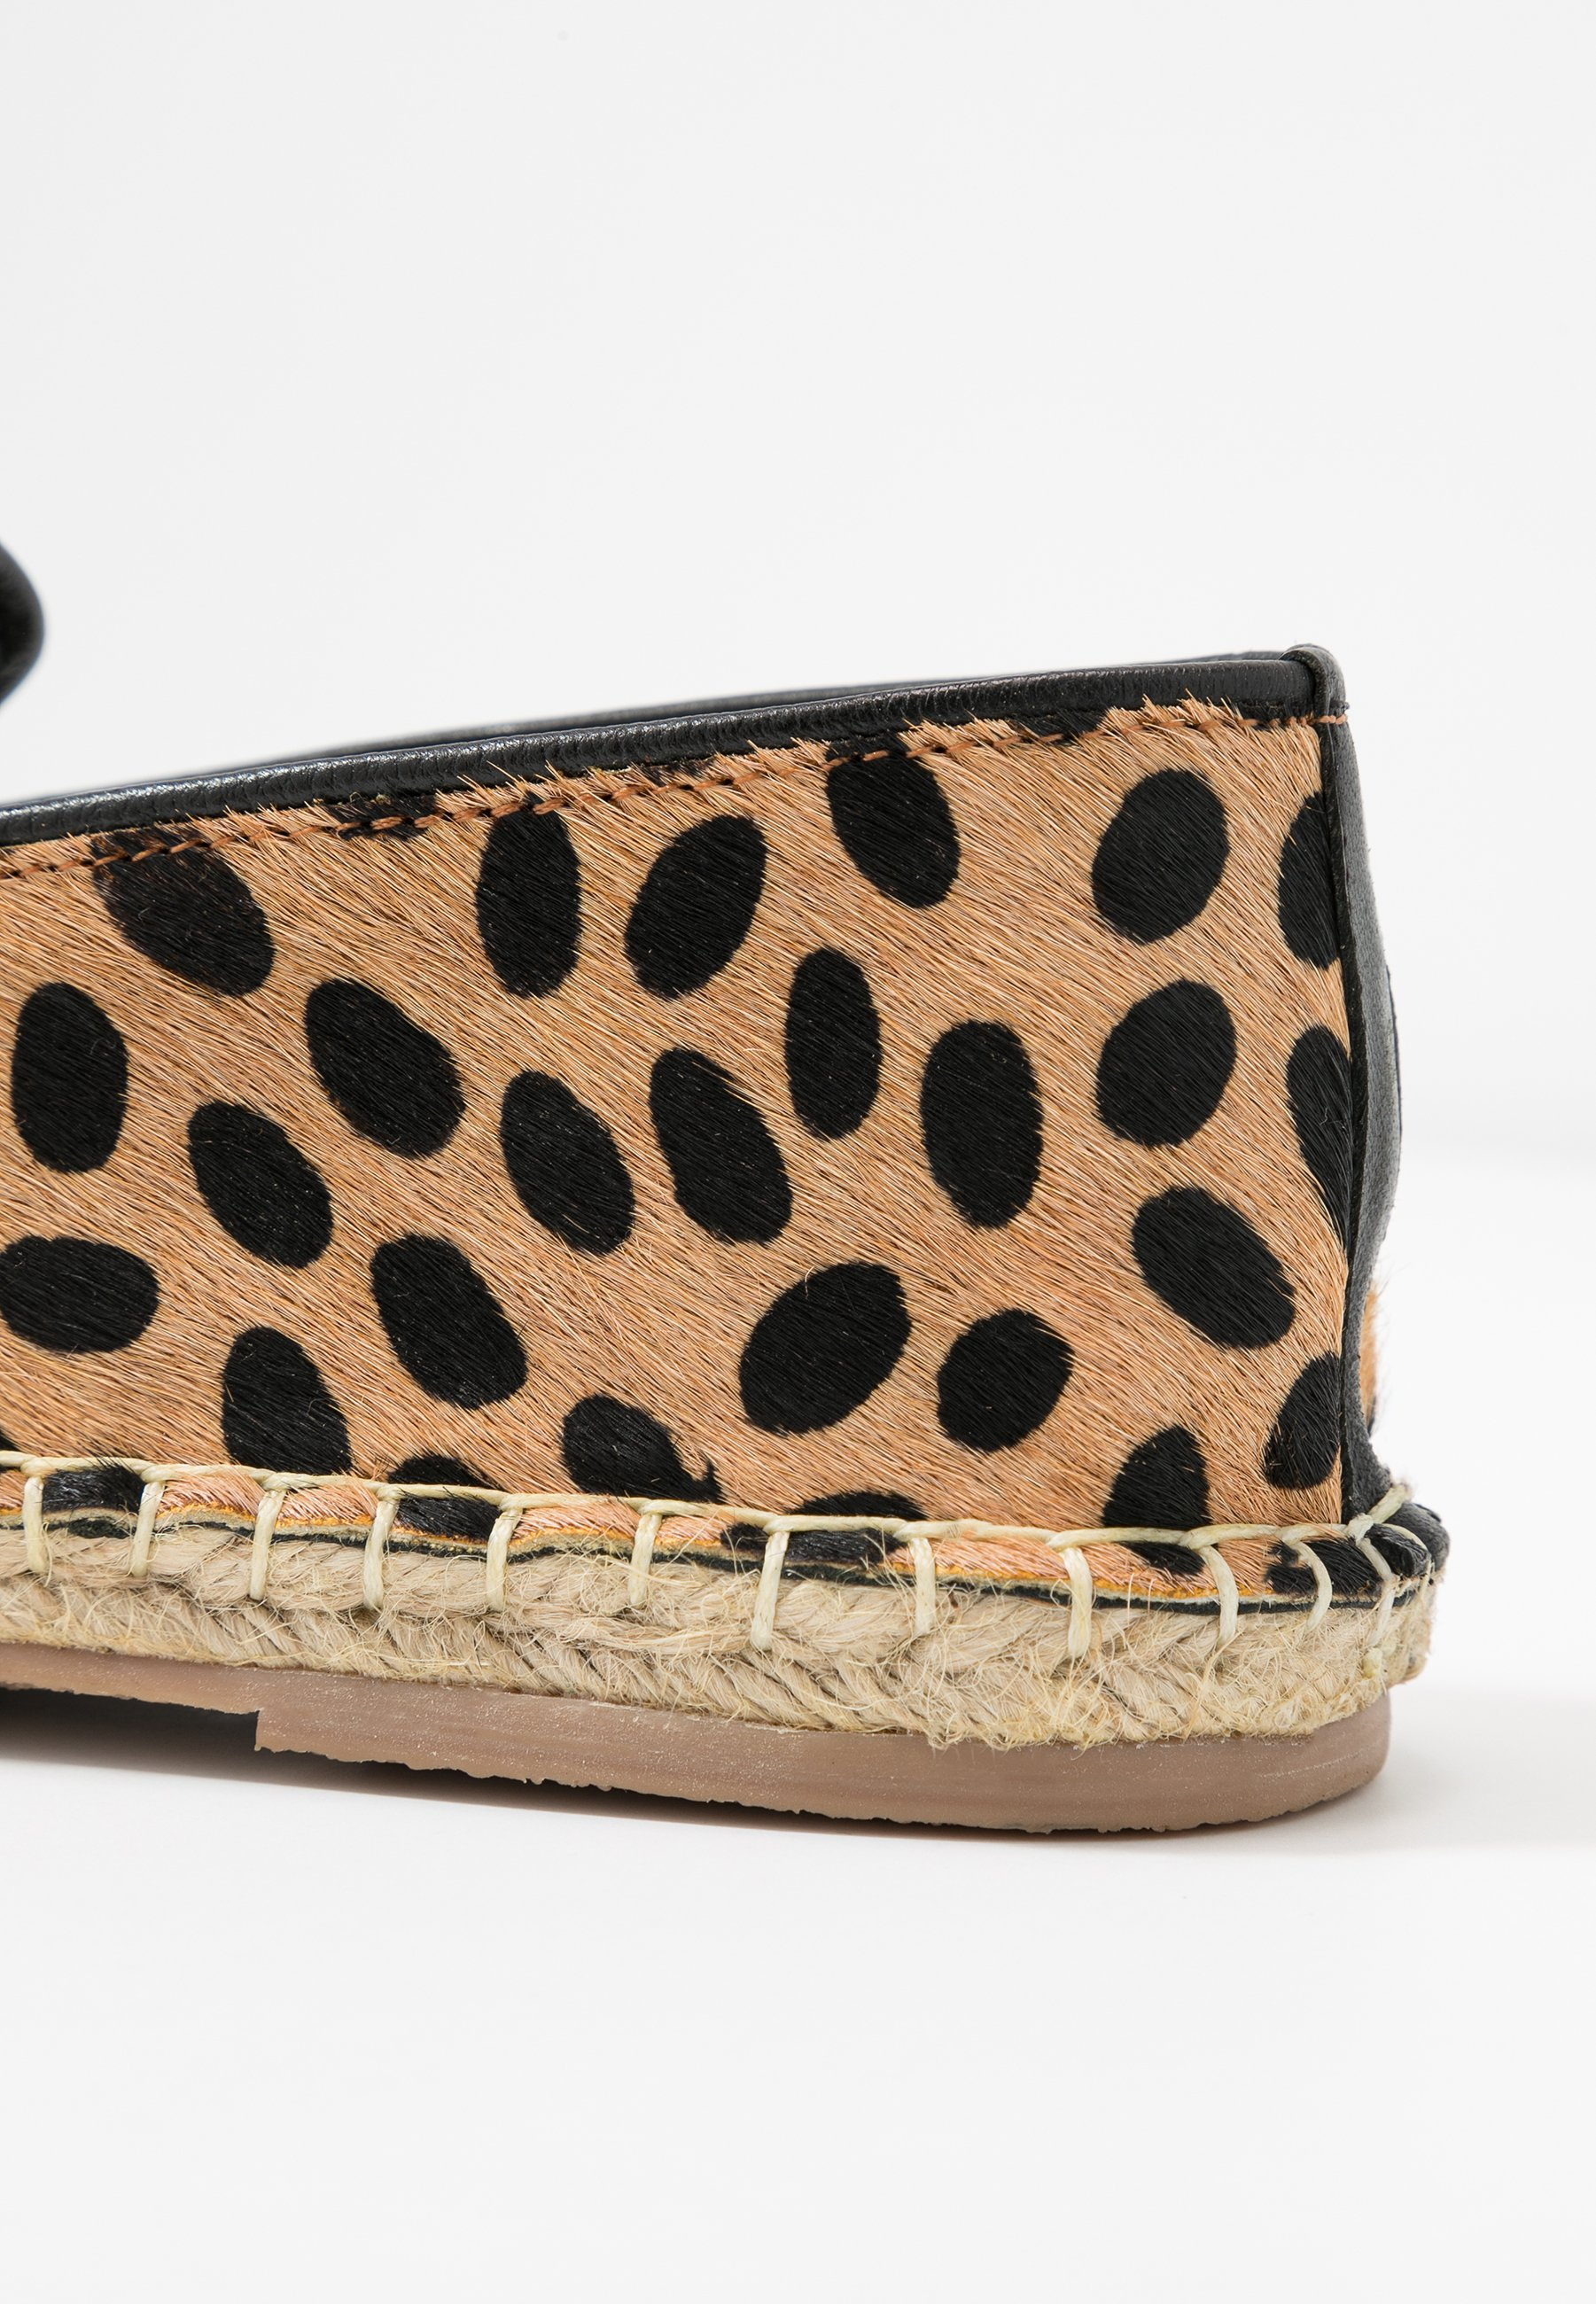 Warehouse Espadrilles - brown